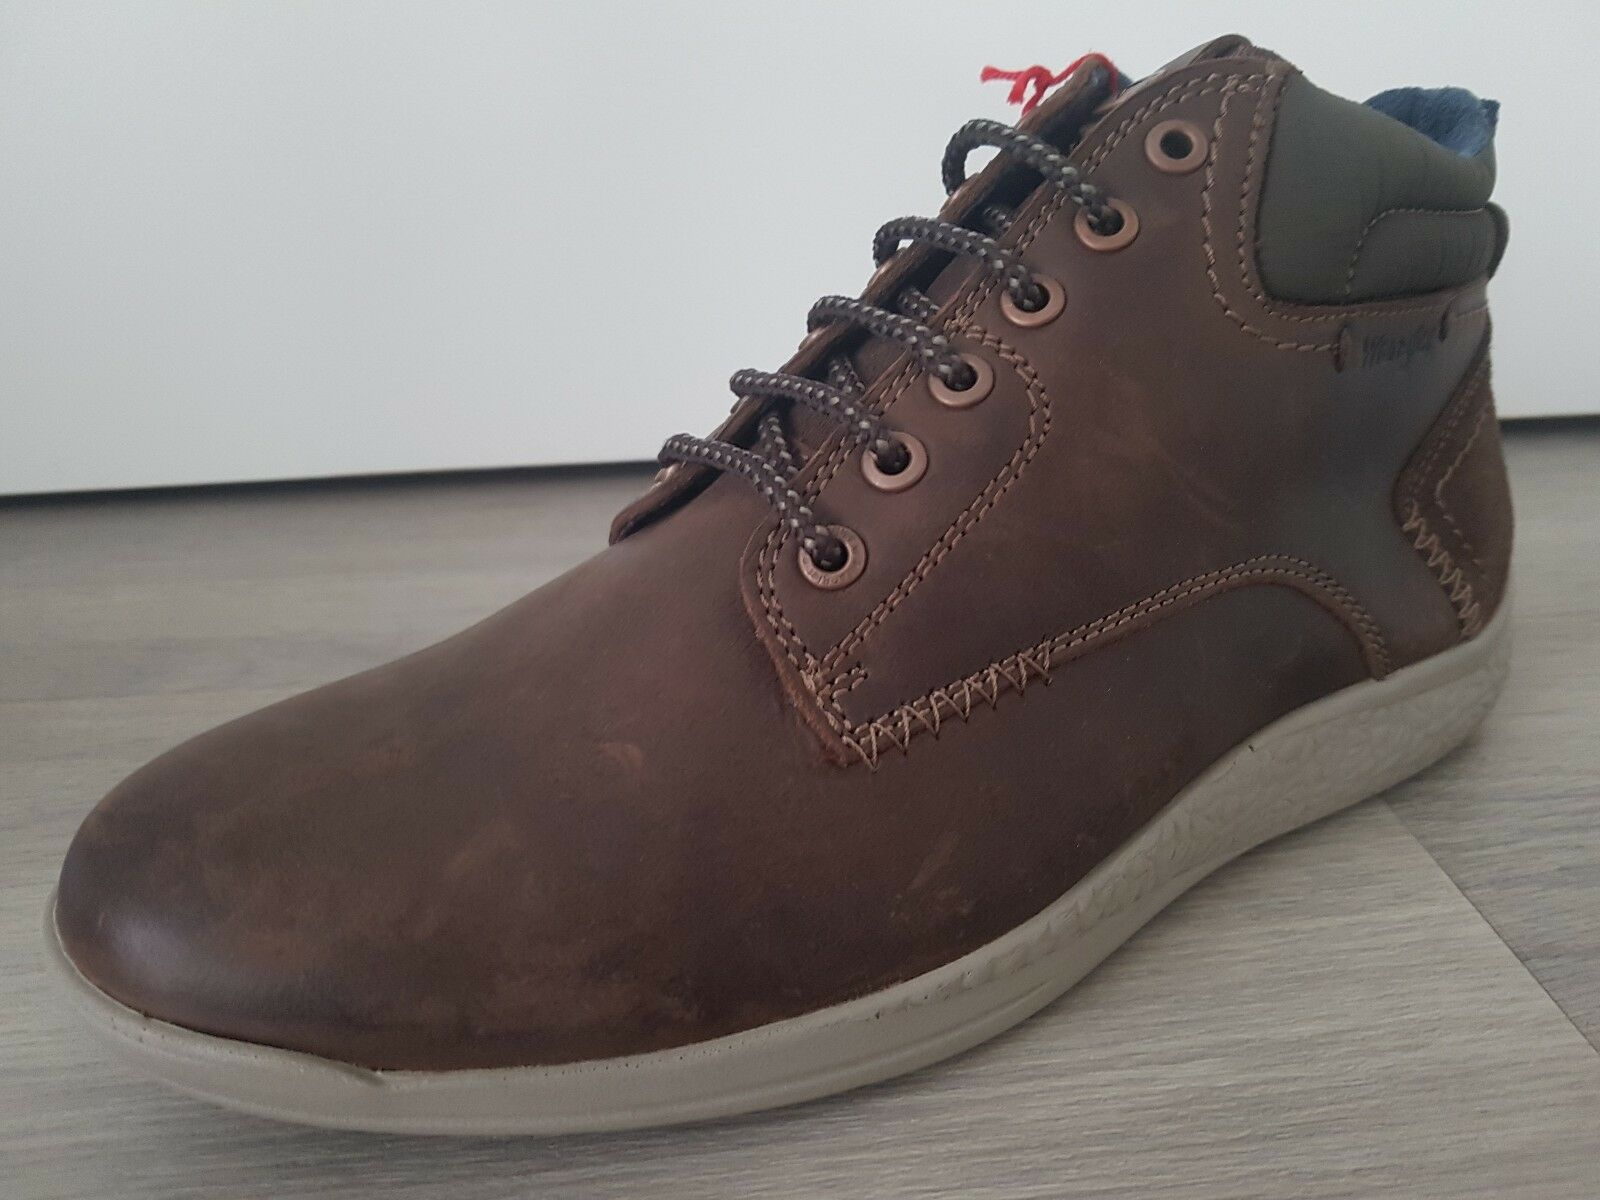 NEW Mens UK 8 EU 42 Wrangler WR560 Lace up dark brown Leather Ankle Boots